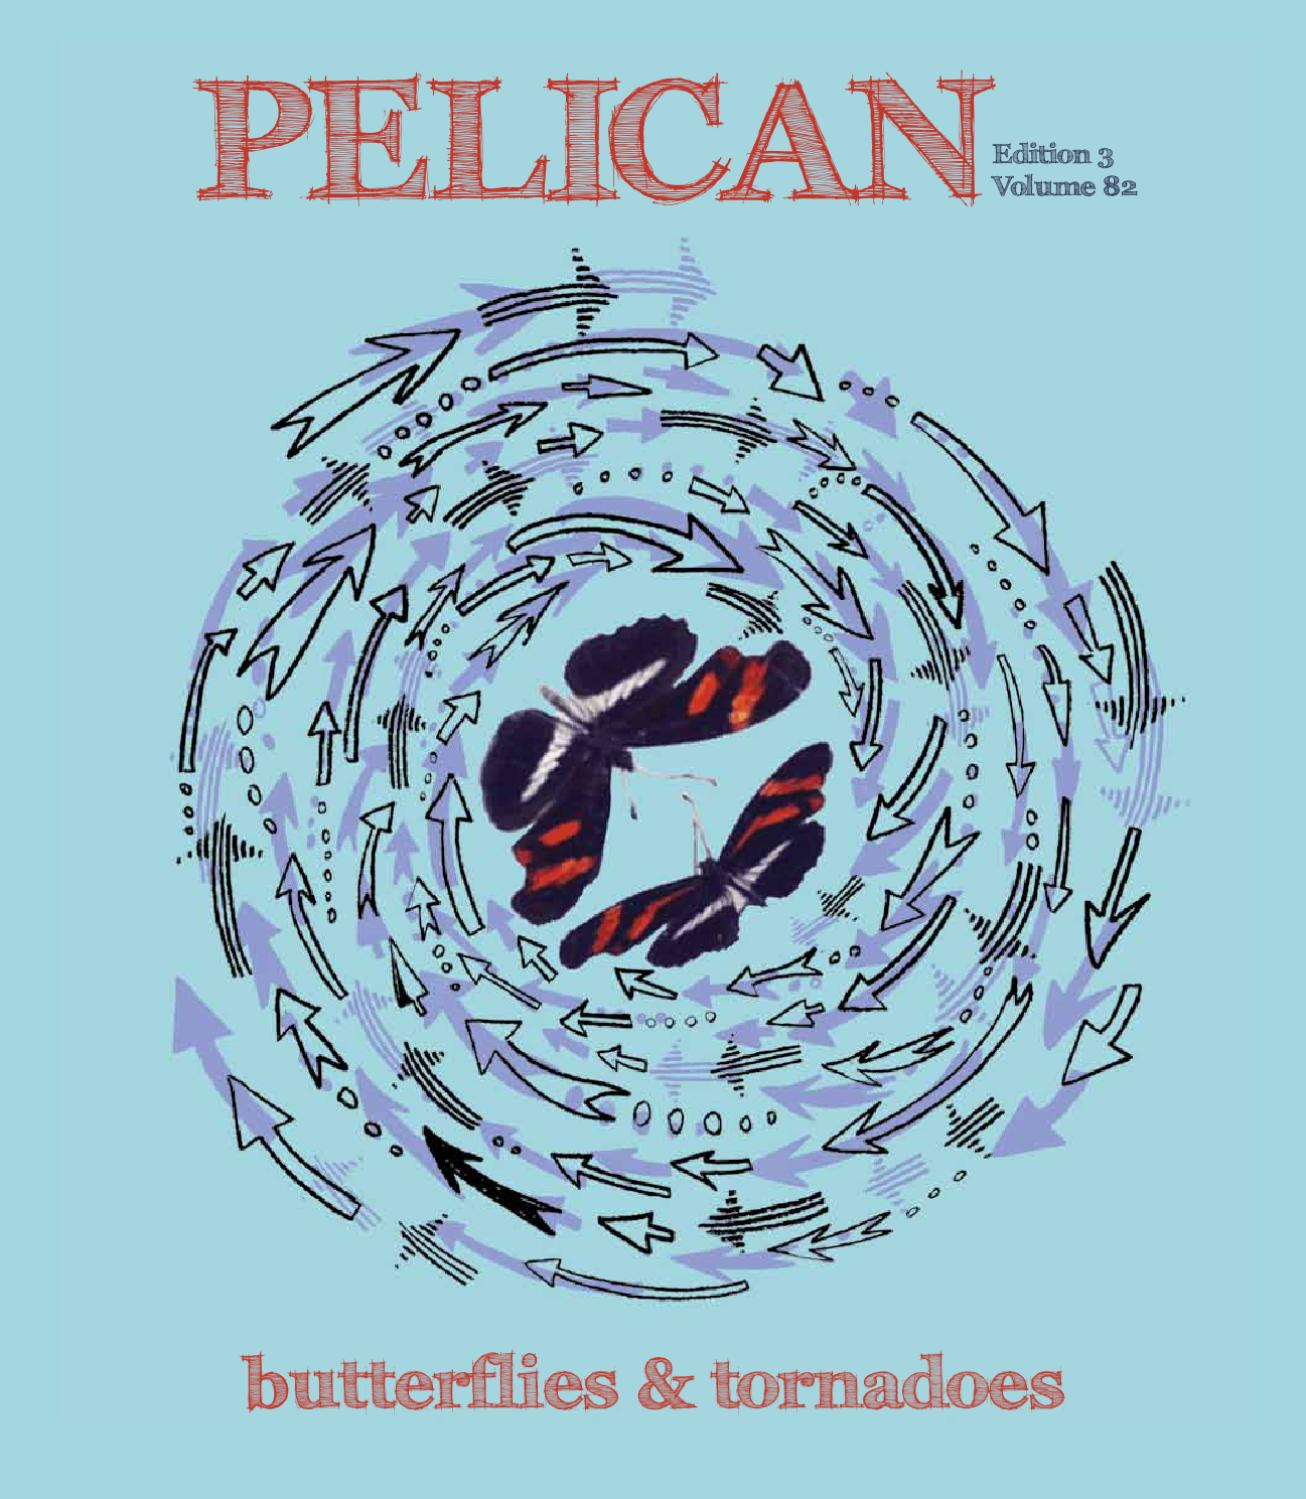 Pelican Volume 82 Edition 3 Butterflies and Tornadoes by UWA Student